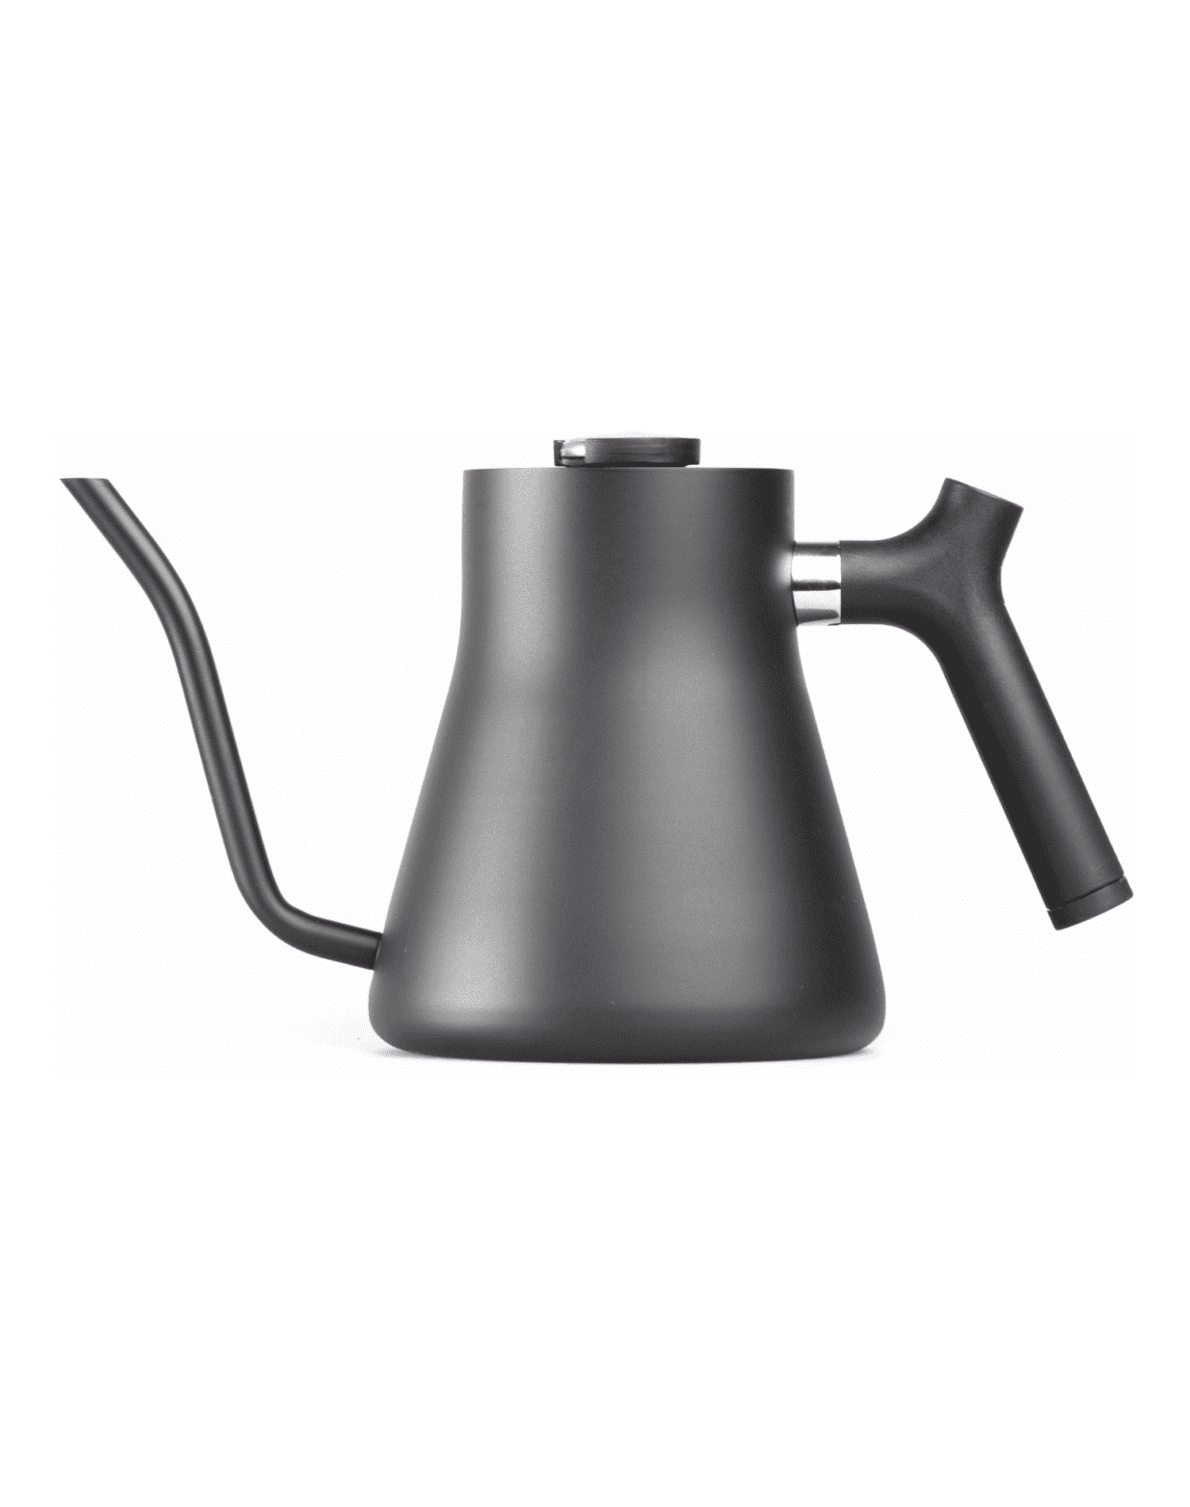 Fellow Stagg Kettle manual